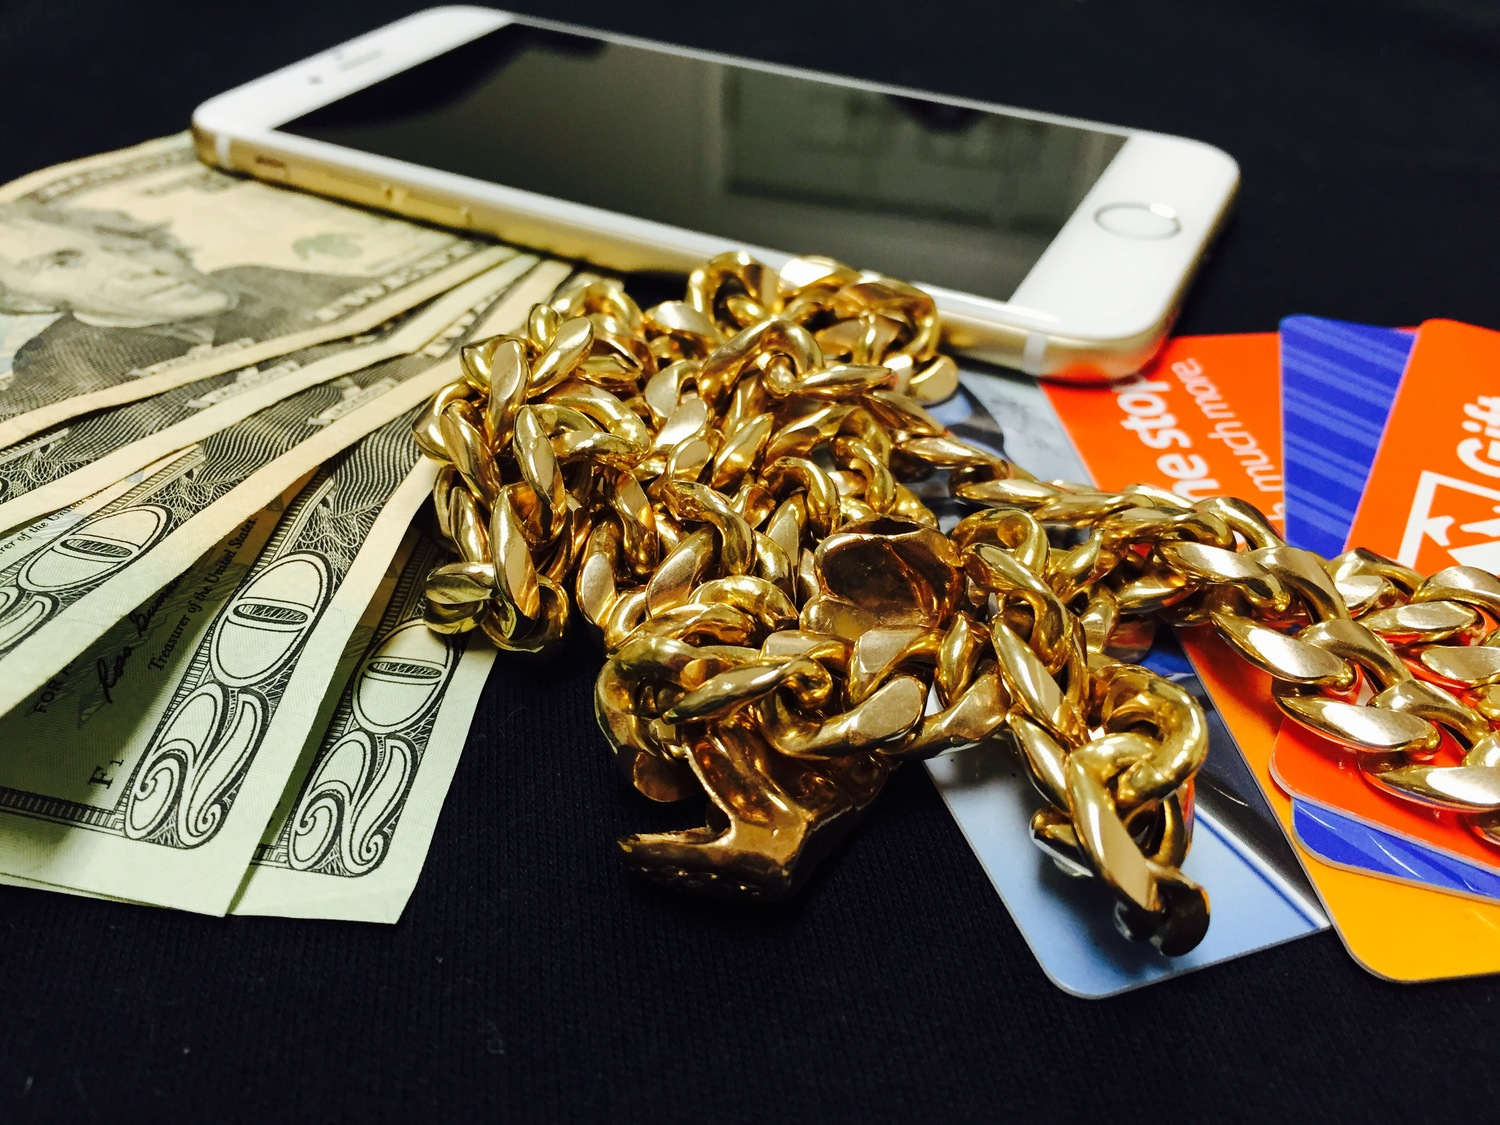 National Gold Exchange Werks Gift Card Kings How To Find Scrap In Electronics Fullsizerender 4